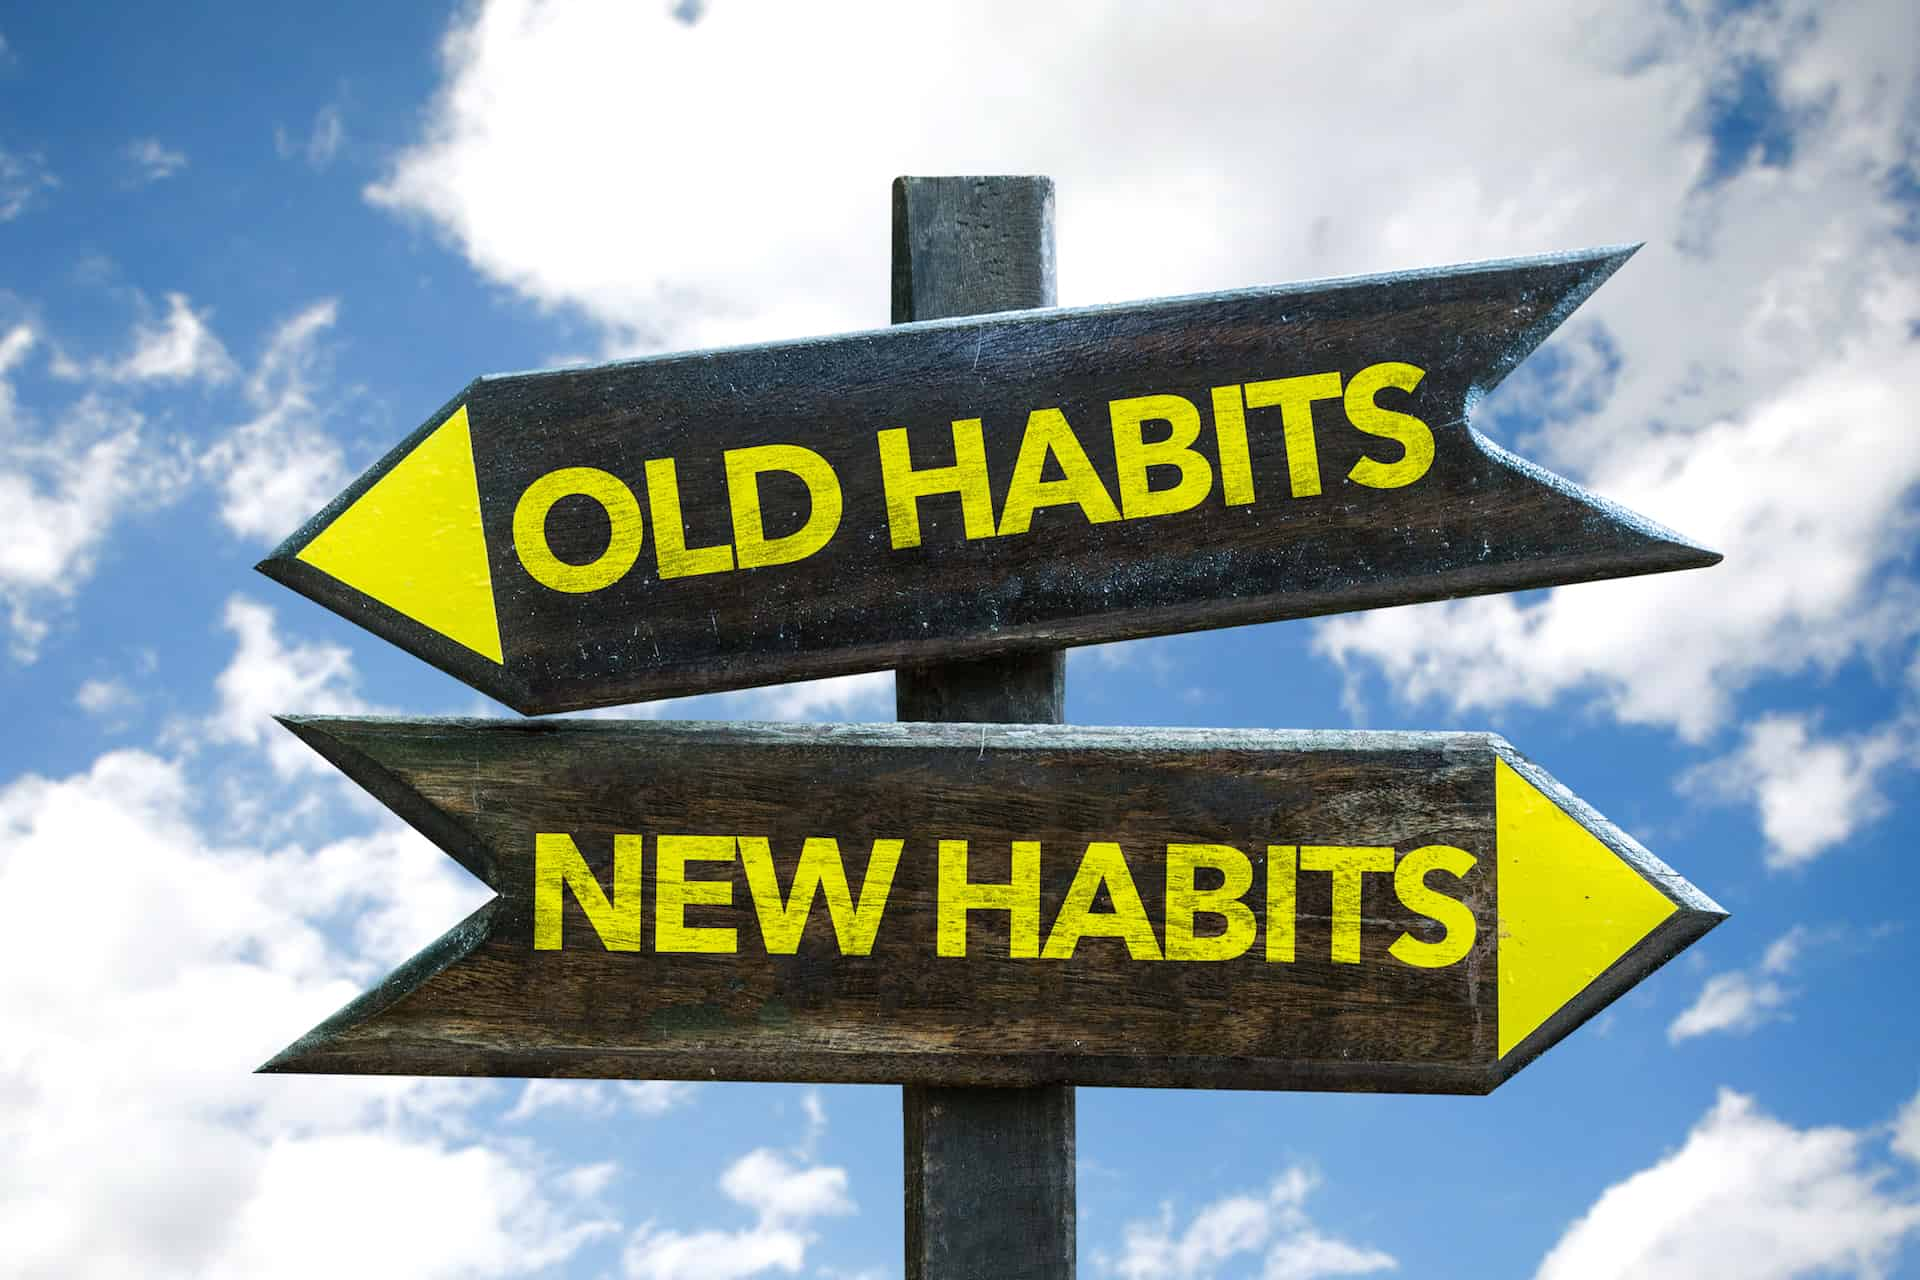 old habits changing to new habits